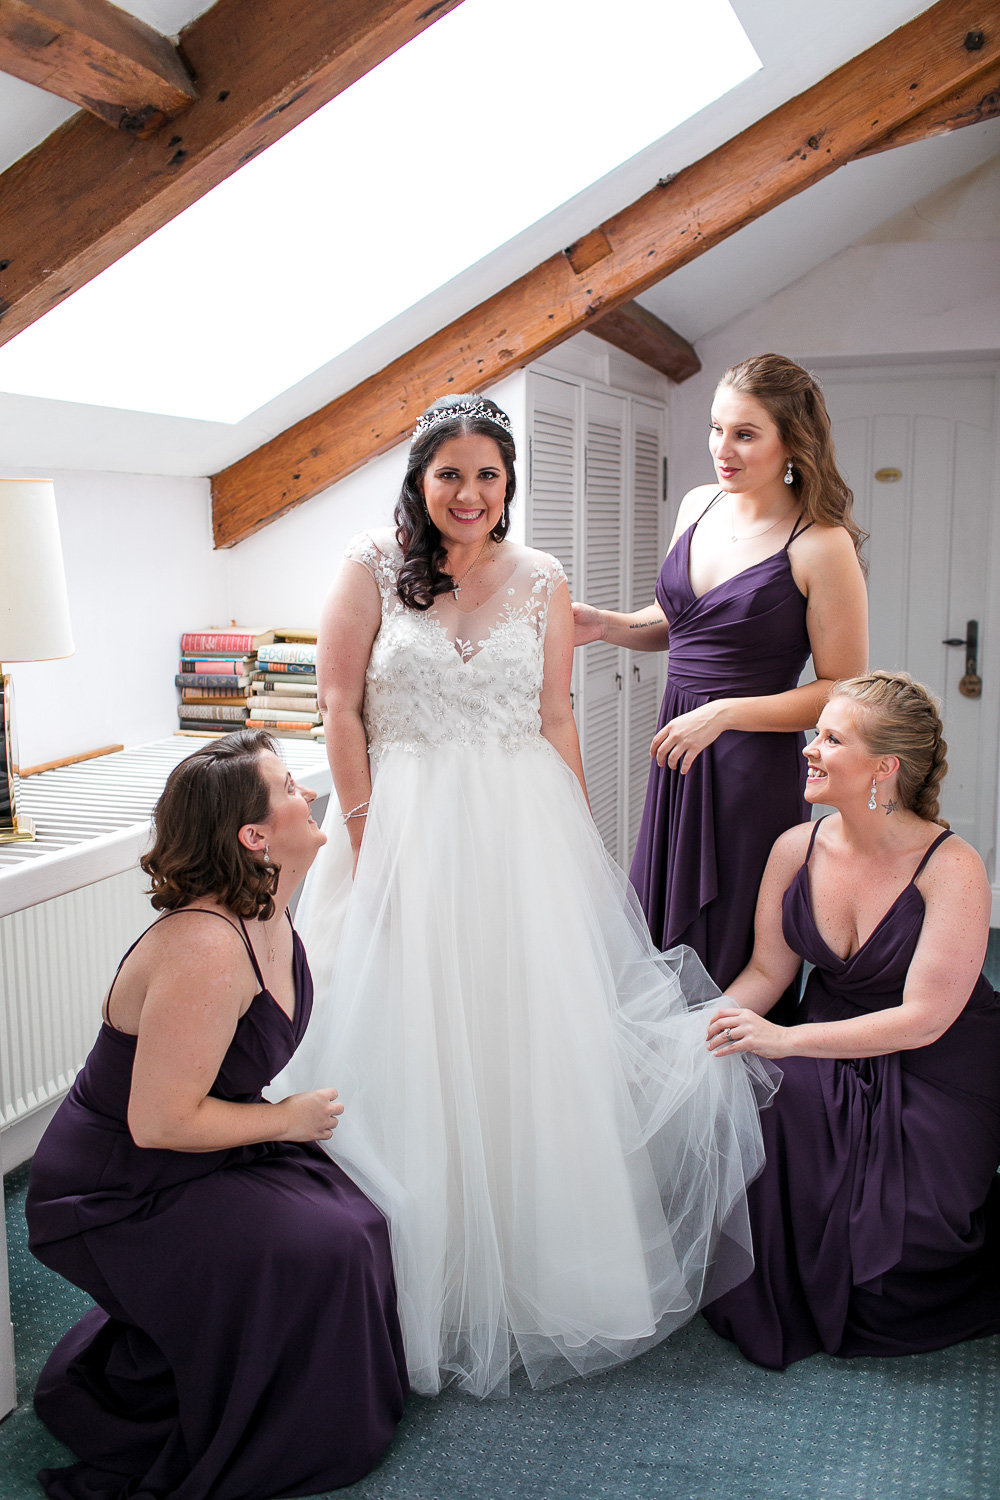 Bridesmaids helping the bride with her wedding dress on the day of her wedding